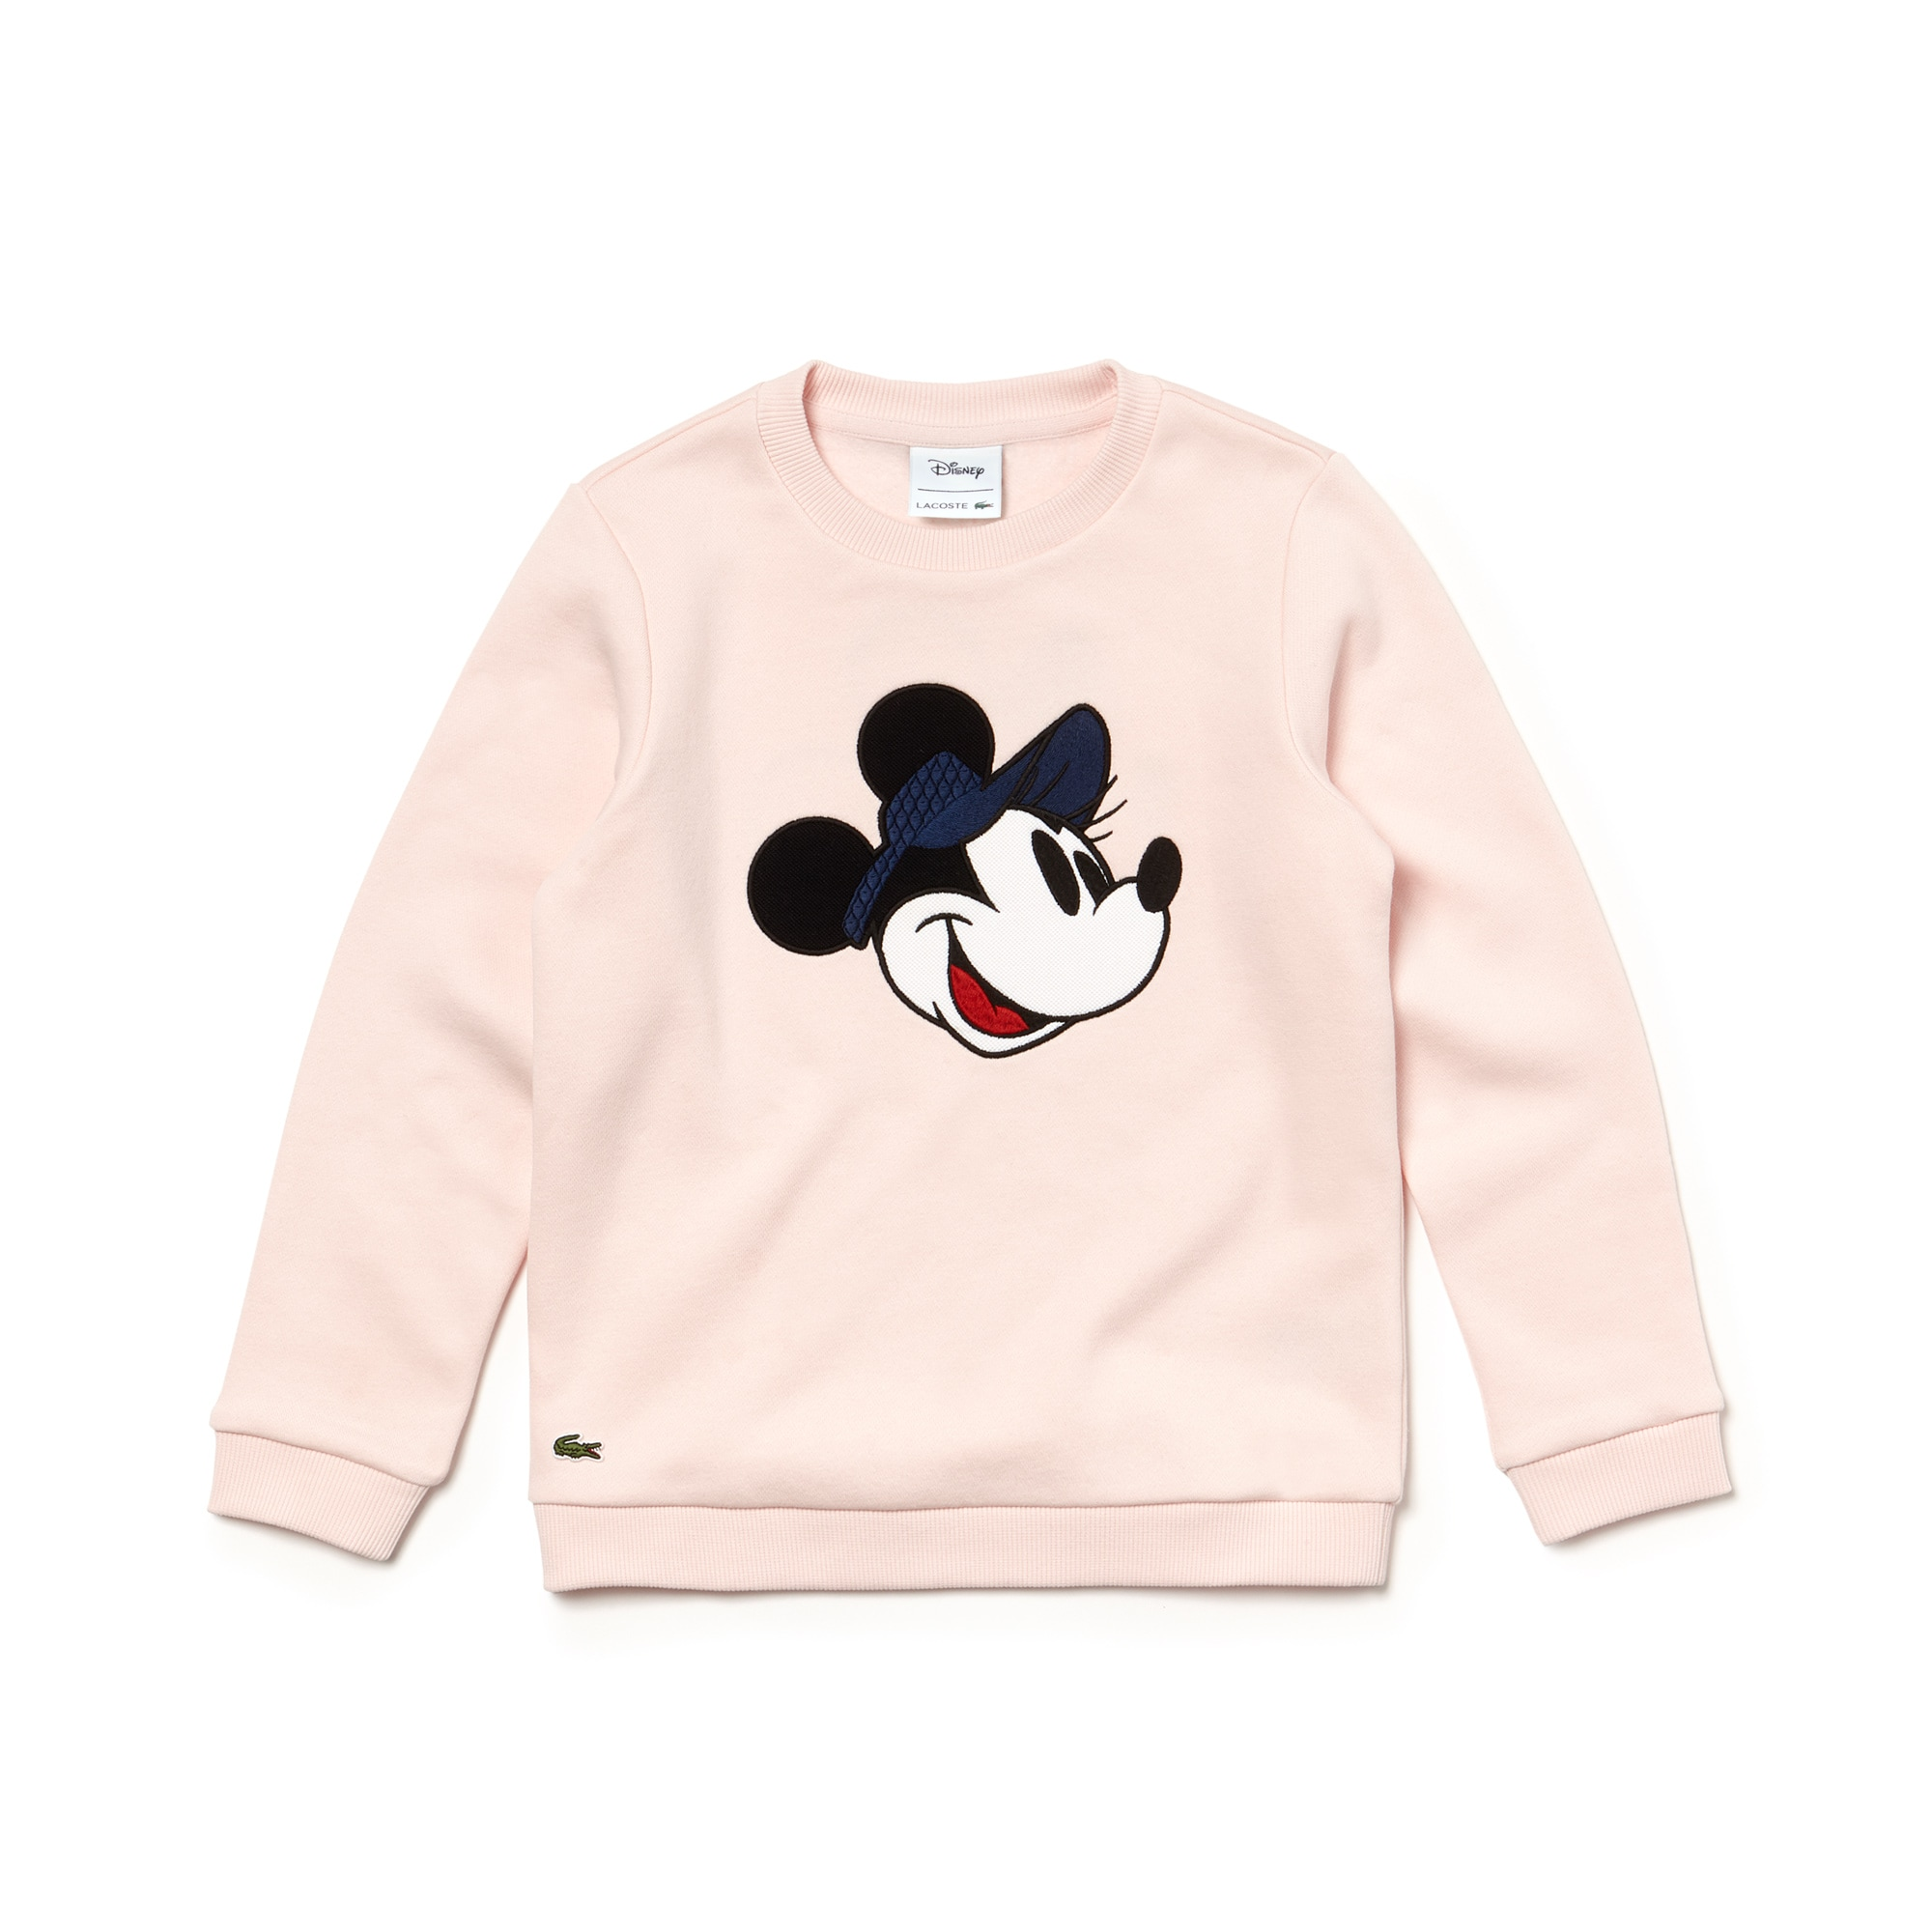 Unisex Crew Neck Disney Print Fleece Sweatshirt